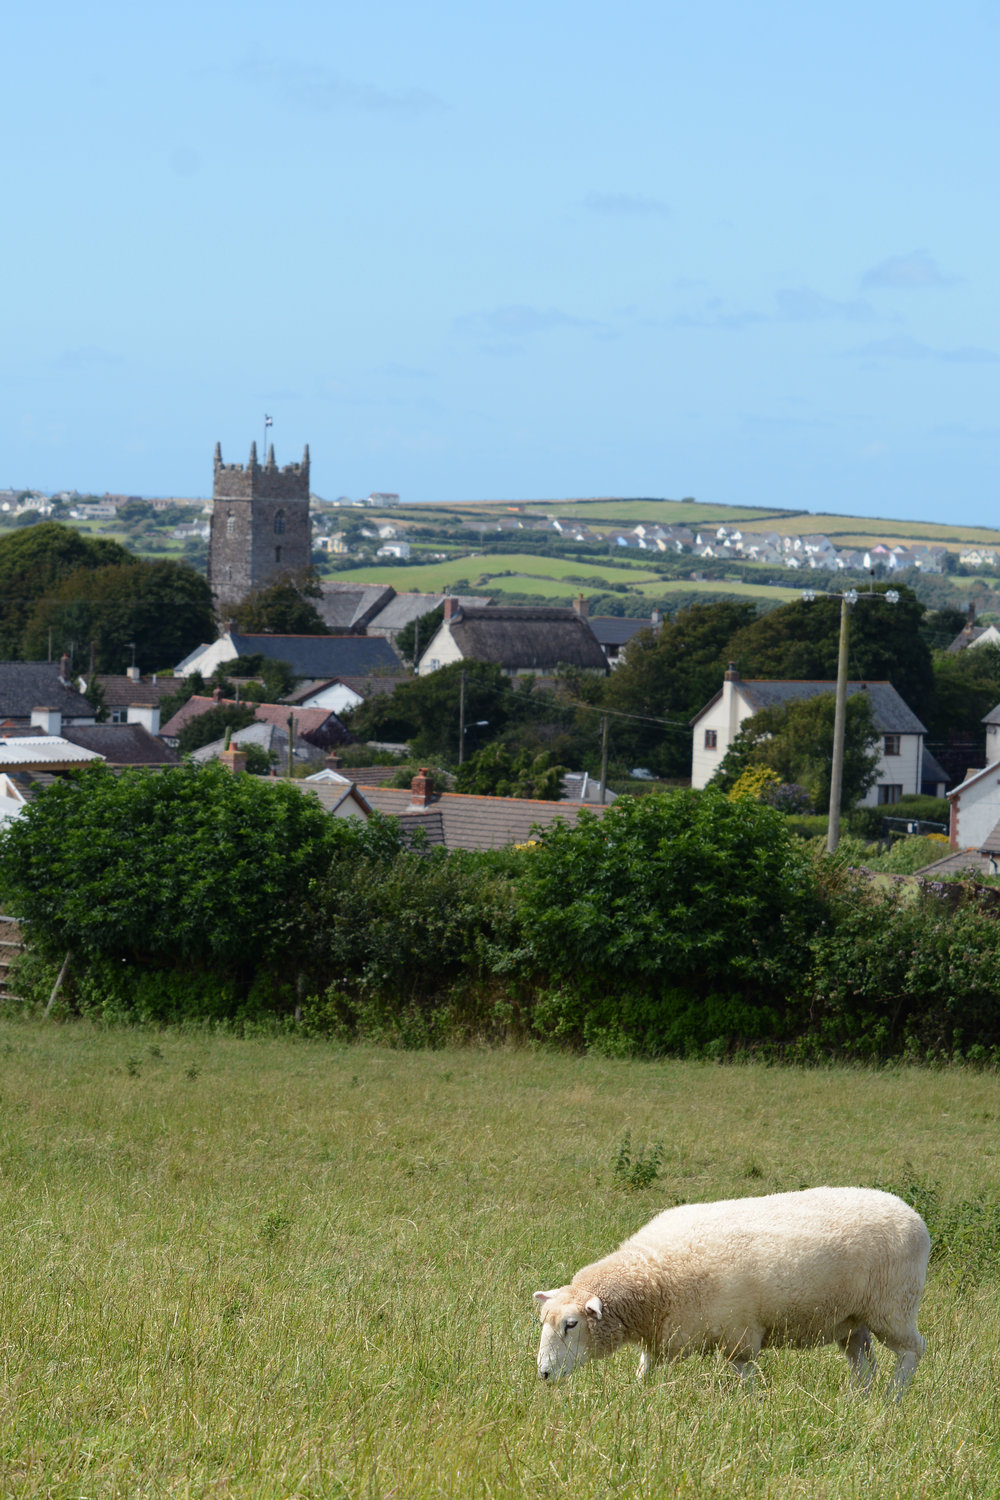 View from Wooldown, towards nearby village of Marhamchurch